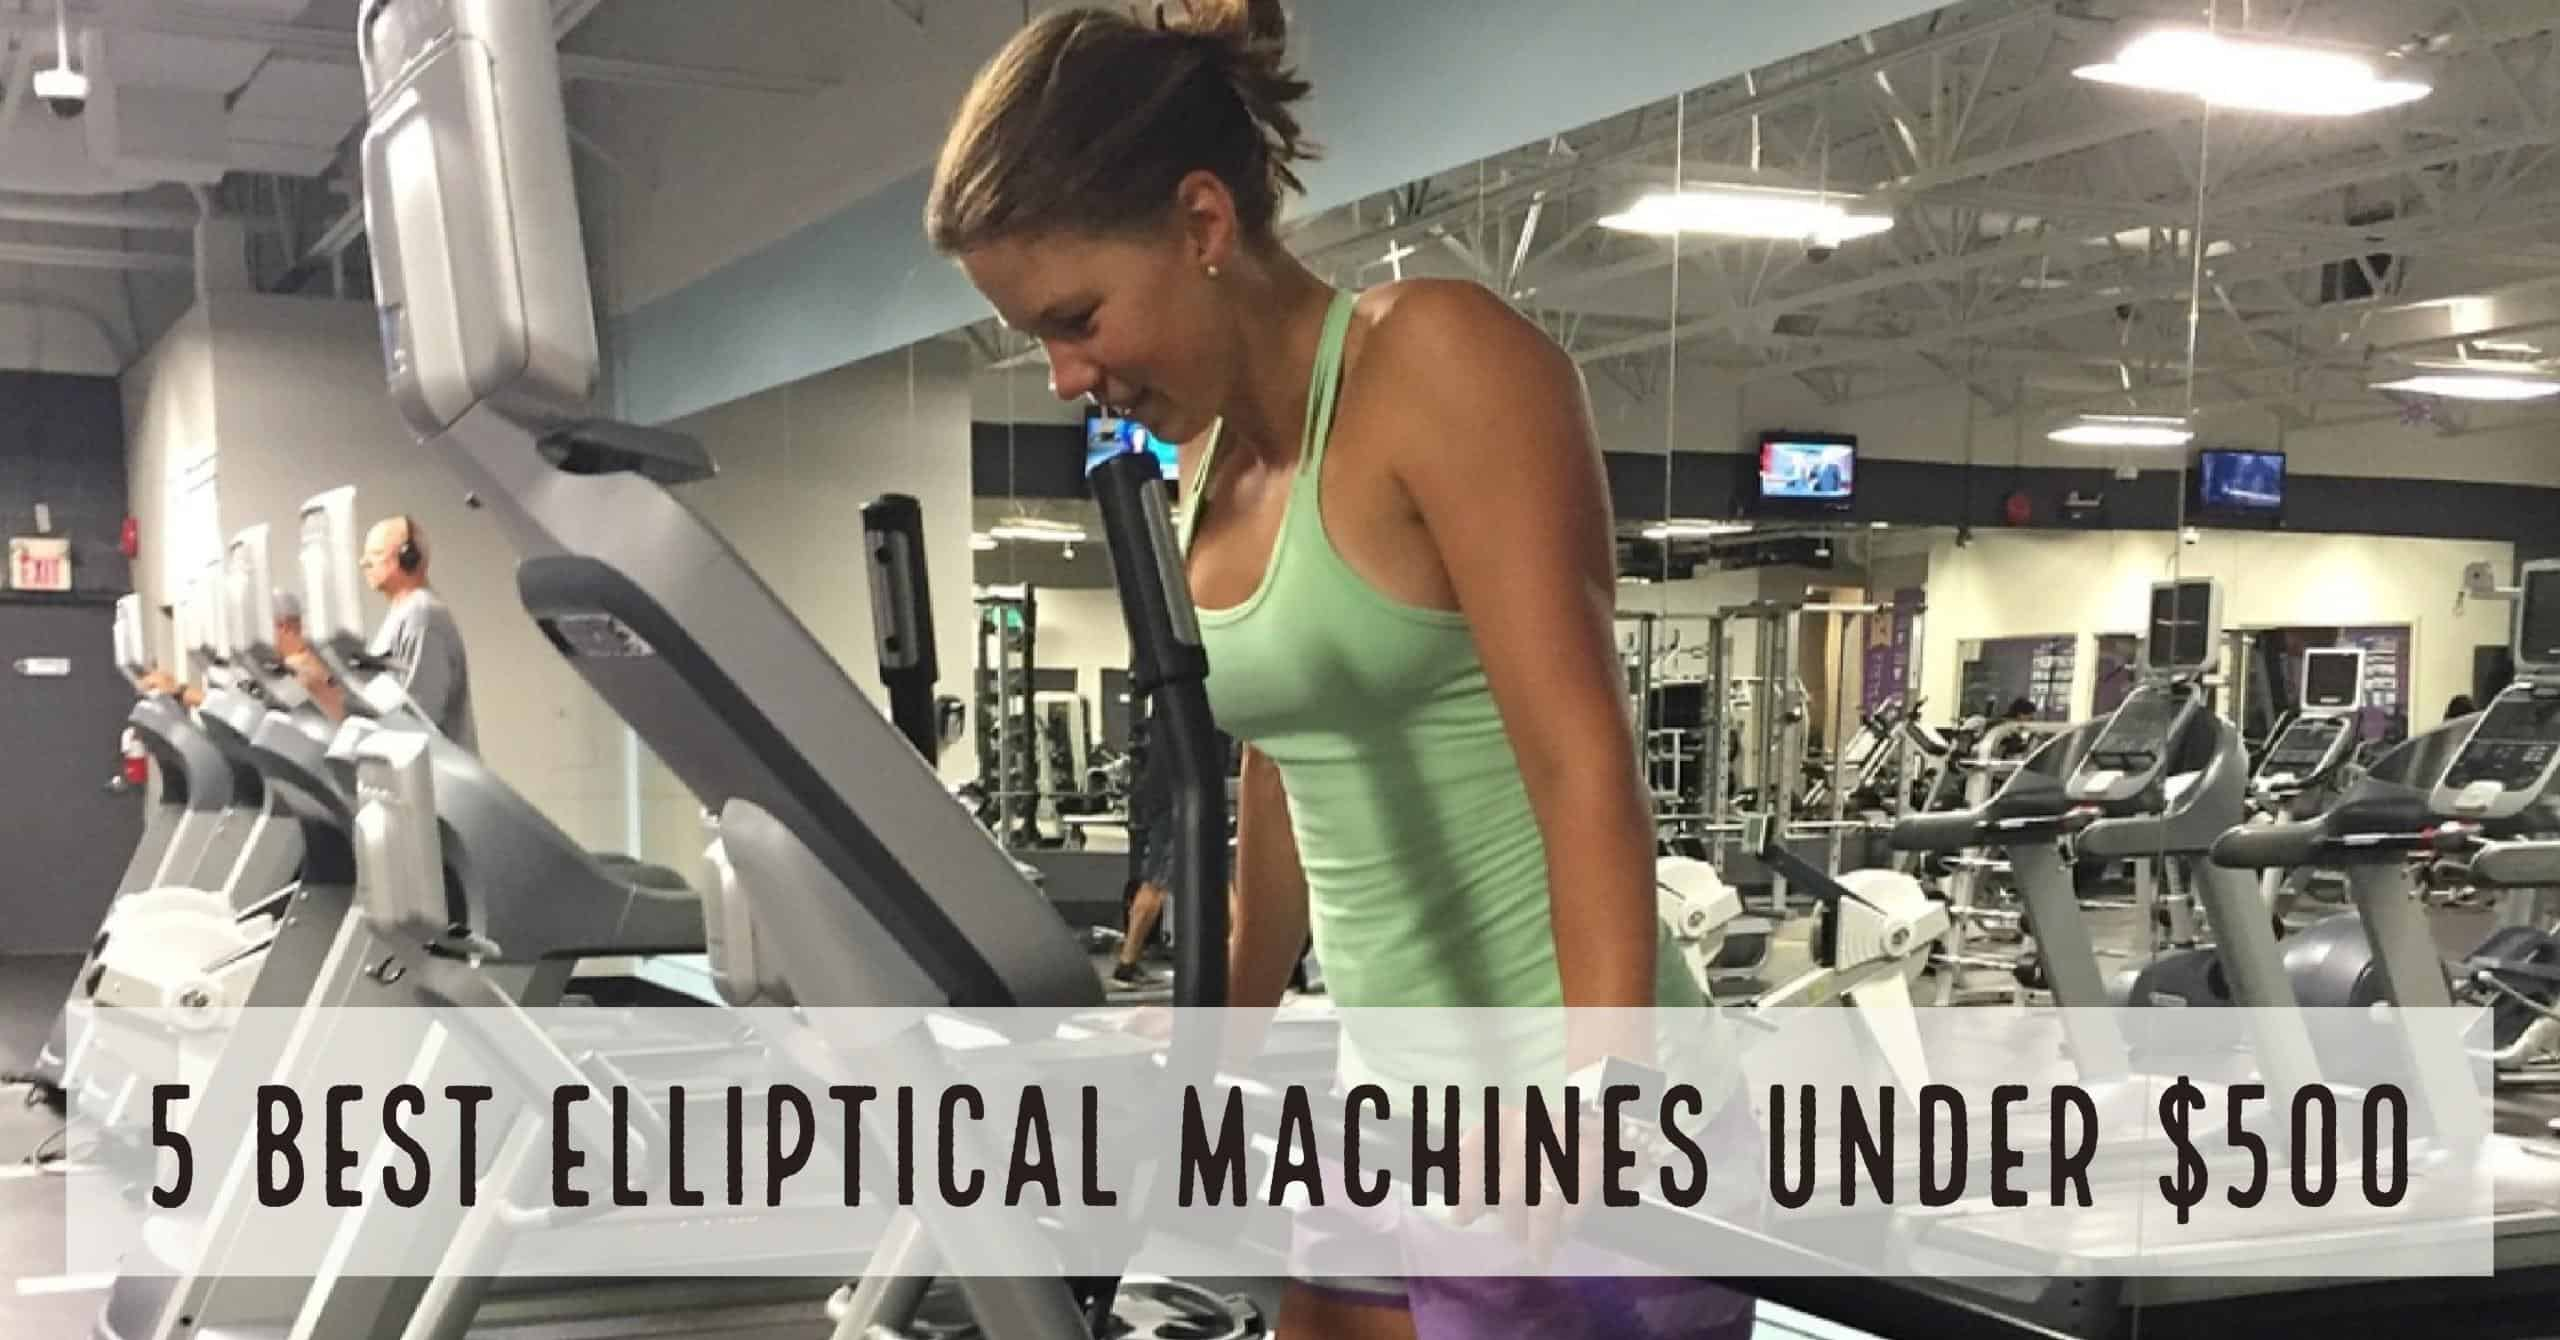 There are a variety of affordable elliptical machines for less than $500. Each machine has its own unique amenities to cater to different runners needs. This article provides details on 5 best elliptical machines for under $500.